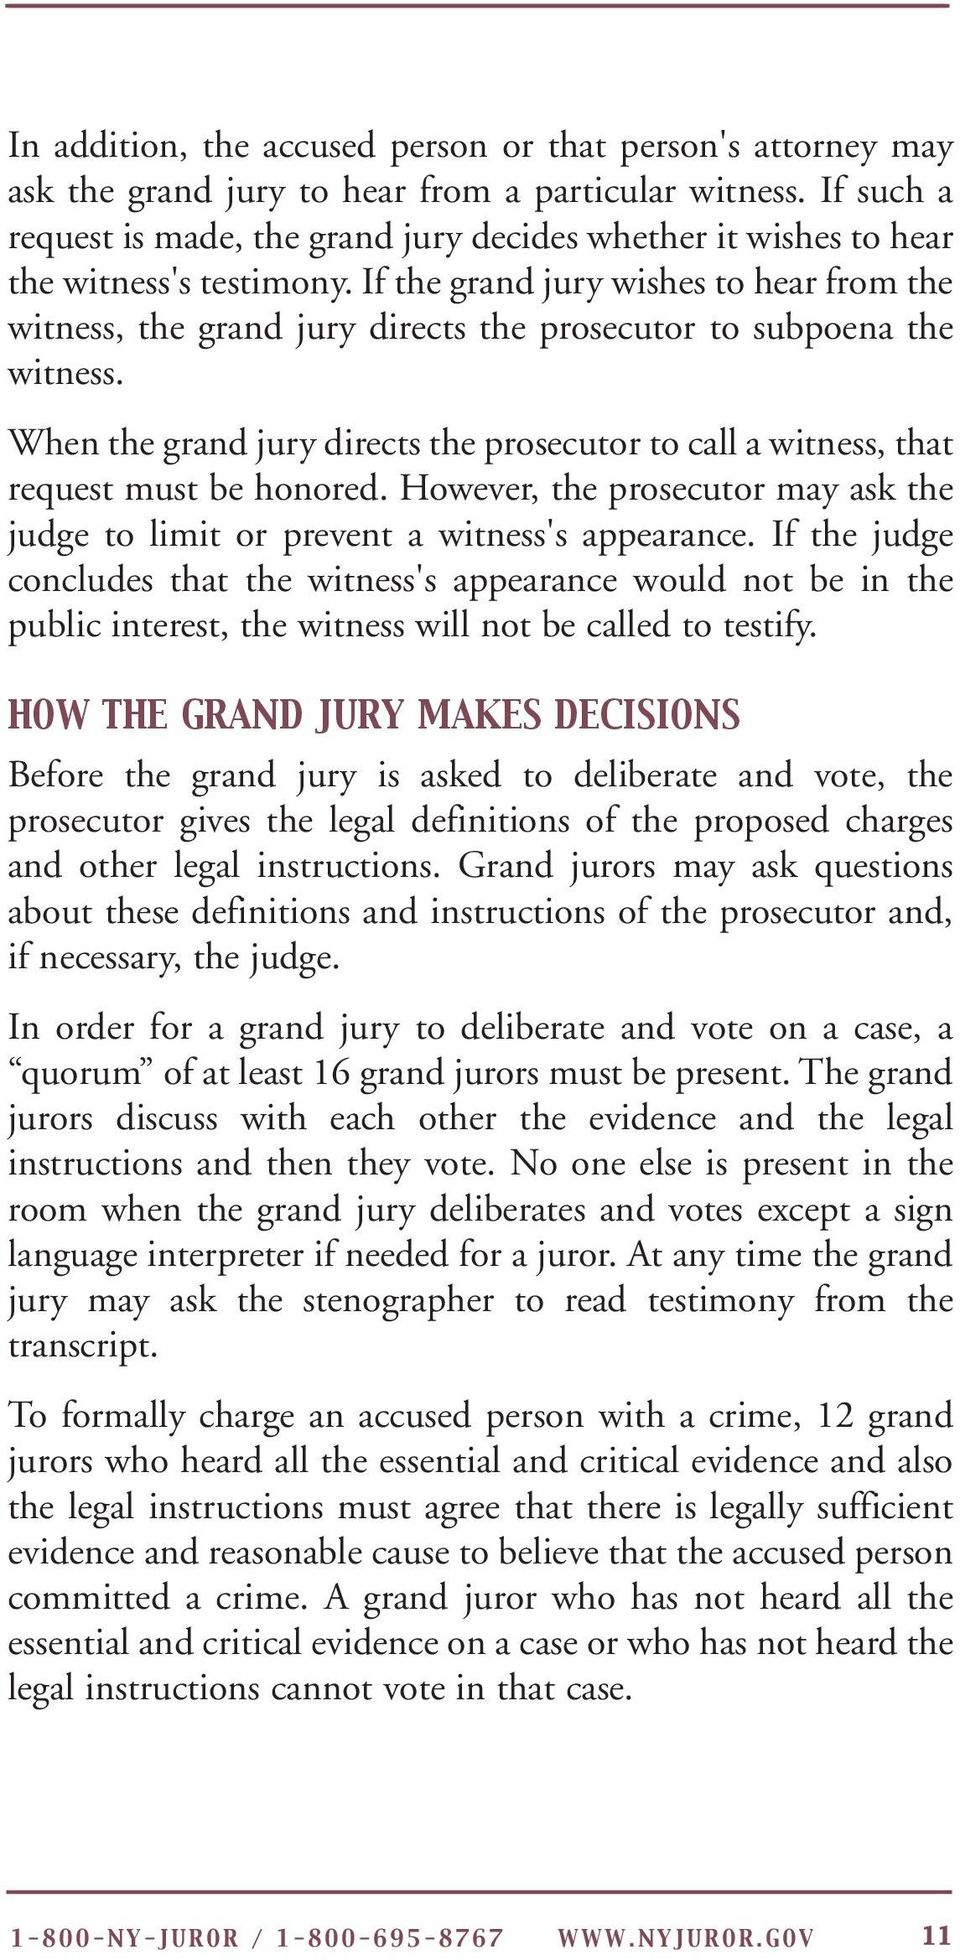 If the grand jury wishes to hear from the witness, the grand jury directs the prosecutor to subpoena the witness.